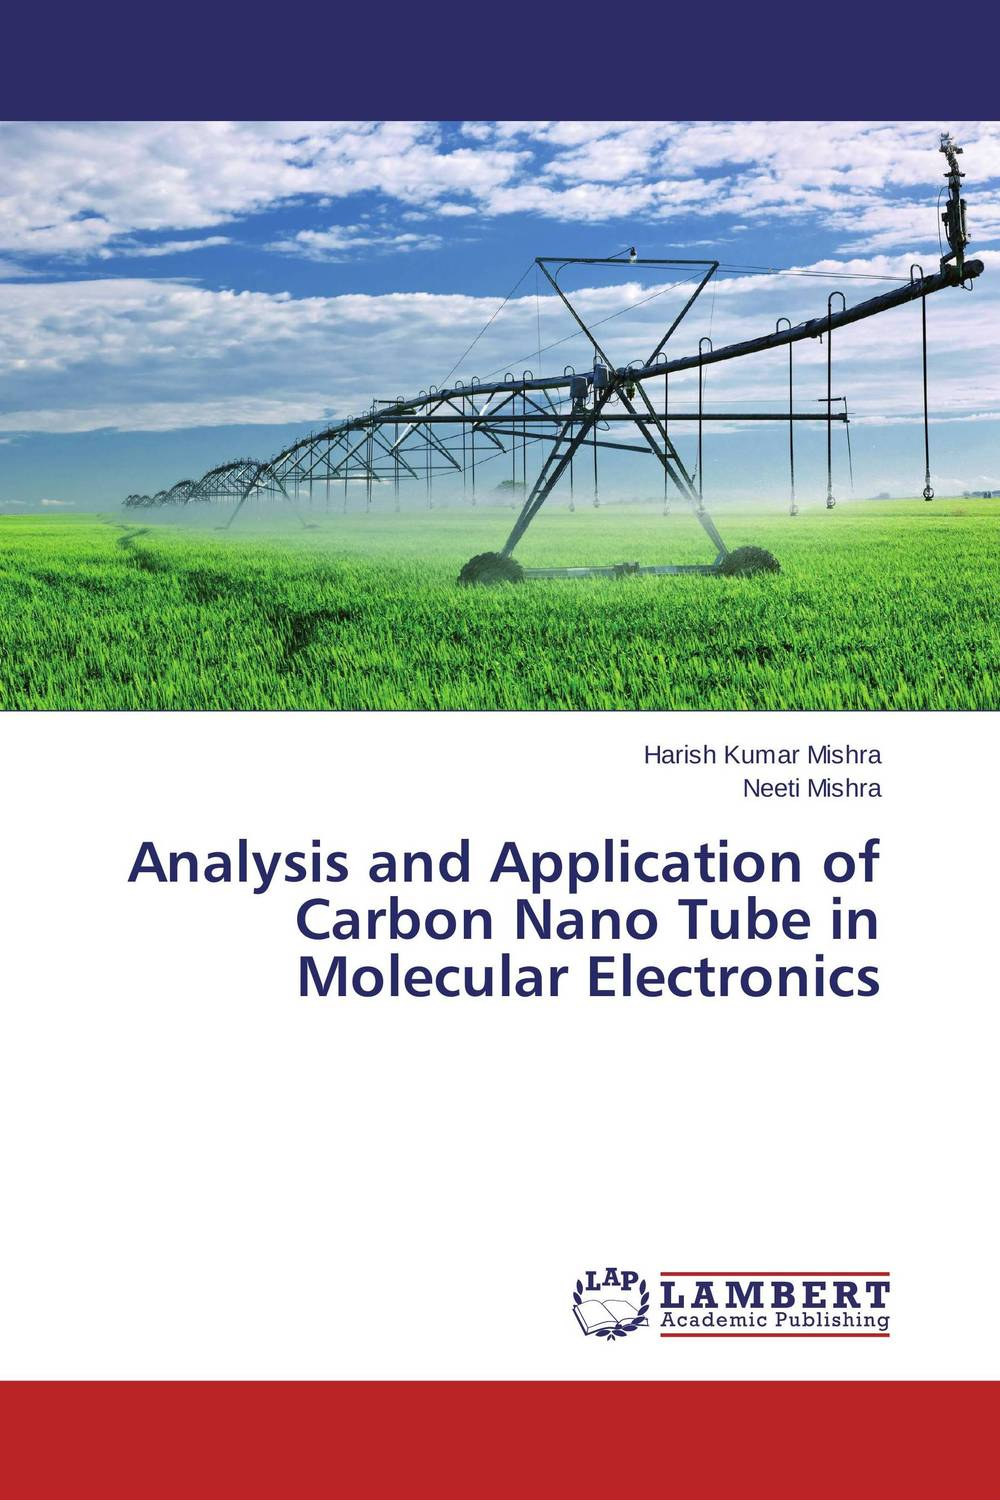 Analysis and Application of Carbon Nano Tube in Molecular Electronics molecular and nano electronics analysis design and simulation 17